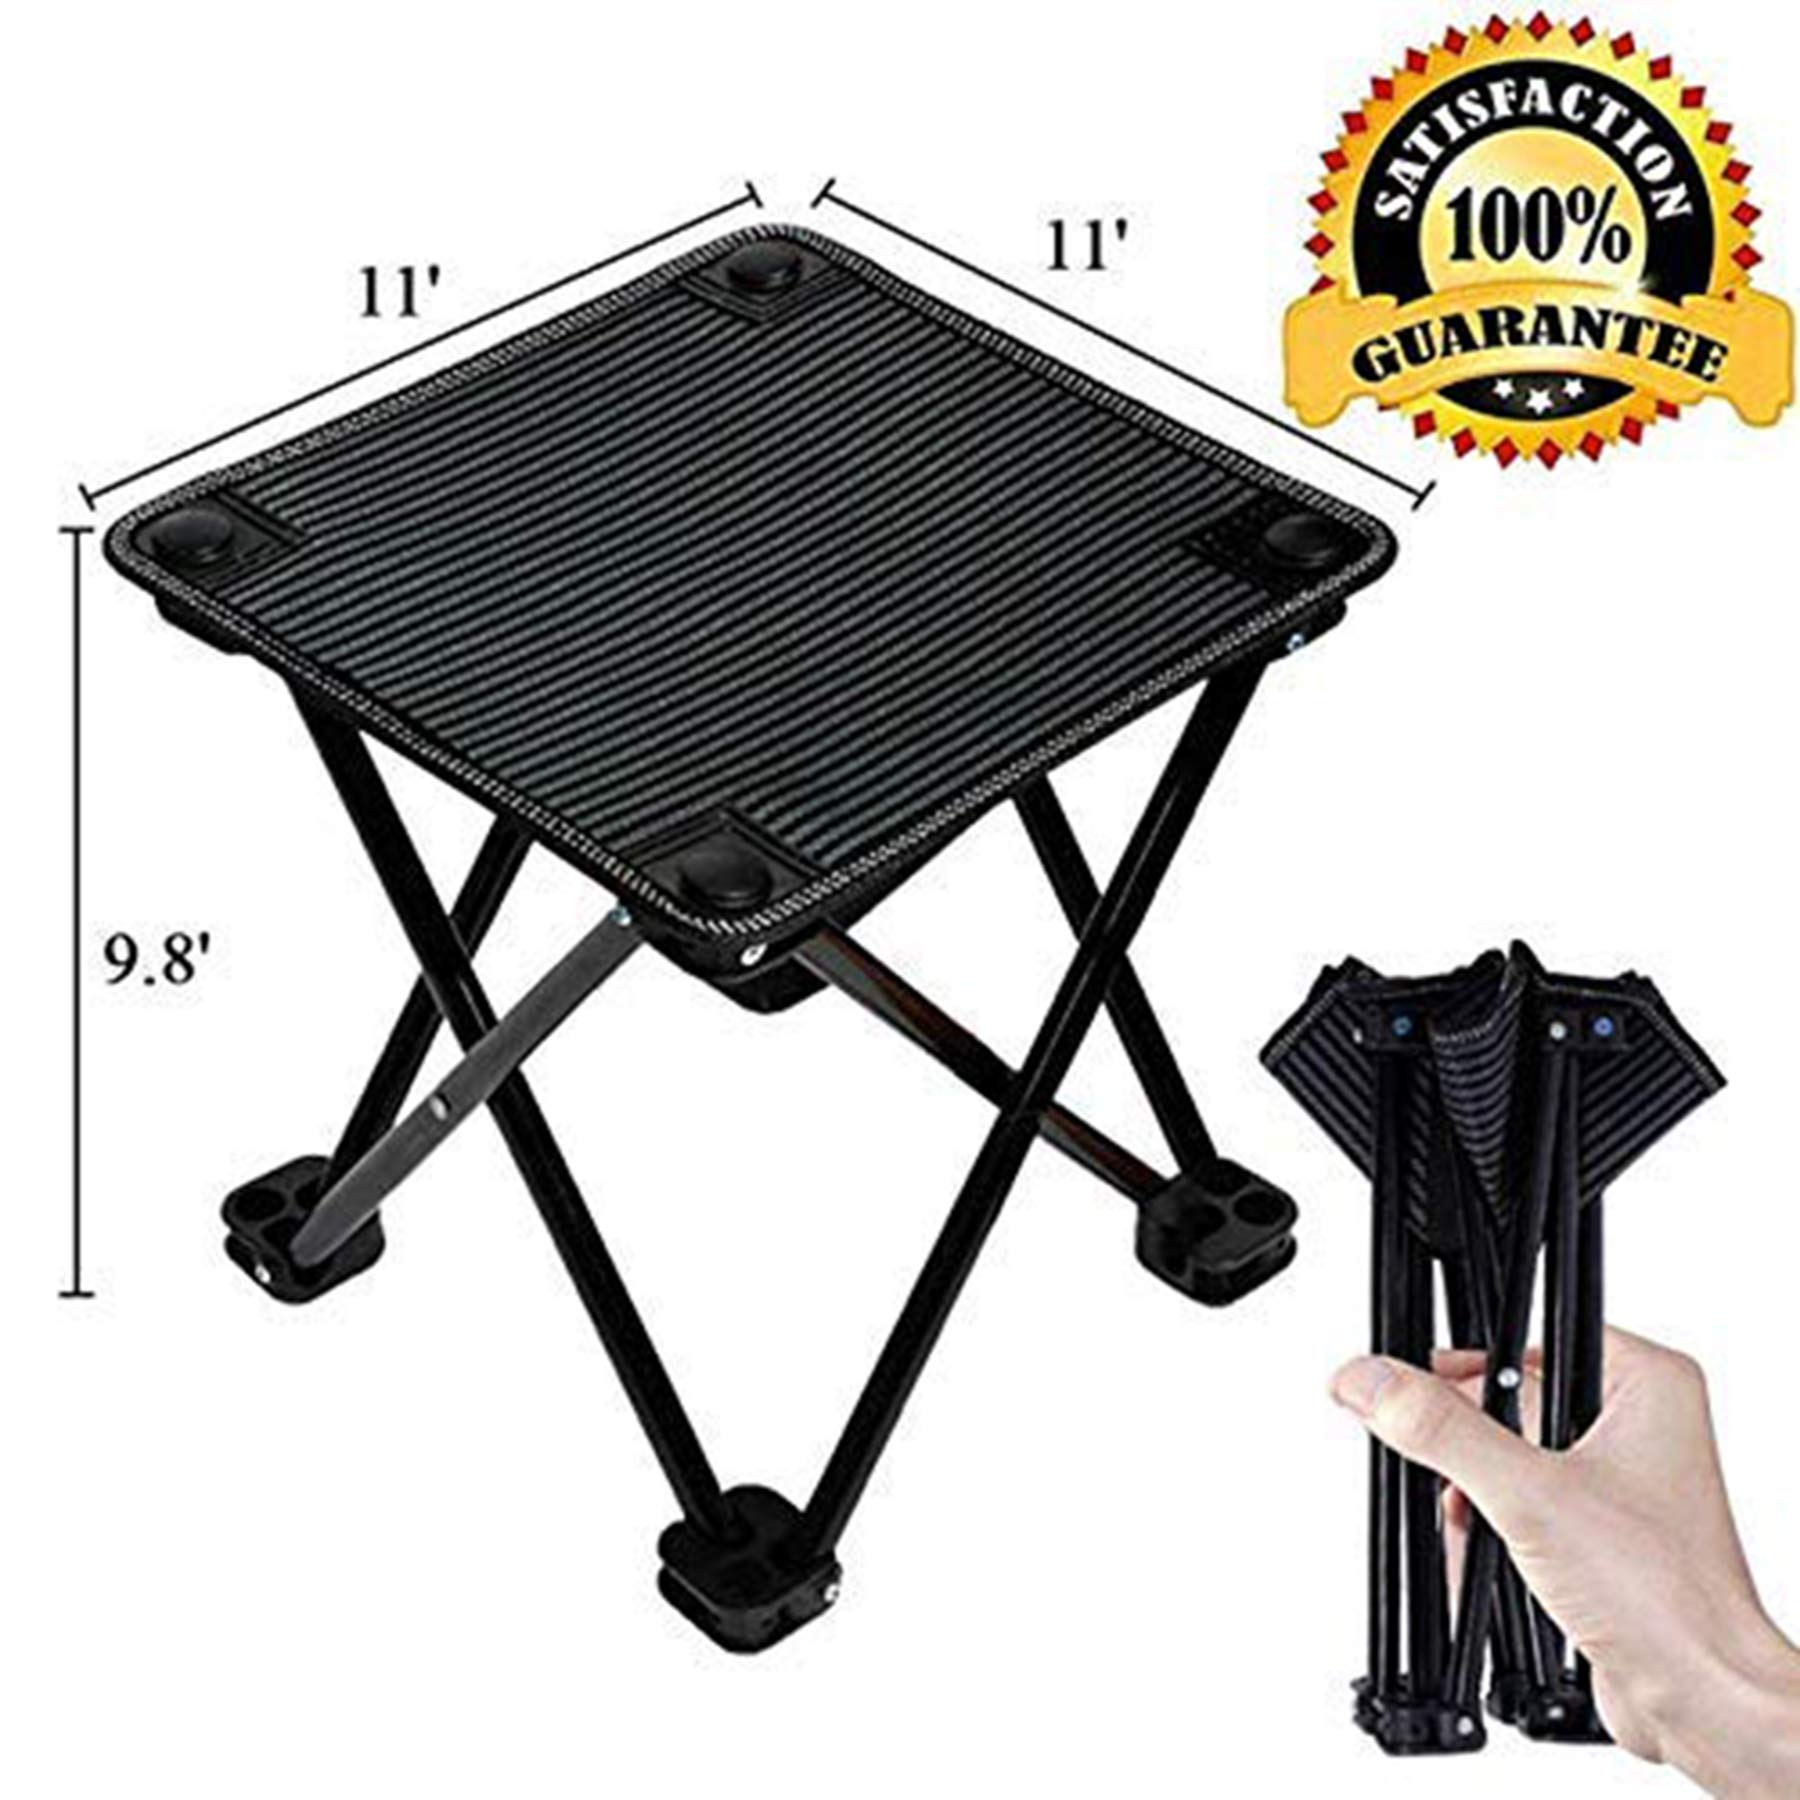 aingycy Folding Portable Camping Stool Mini Lightweight Sturdy Collapsible Chair for Camping, Fishing, Hiking, Fishing, Travel, Beach, Picnic with Portable Bag, Black (Black-Medium) by aingycy